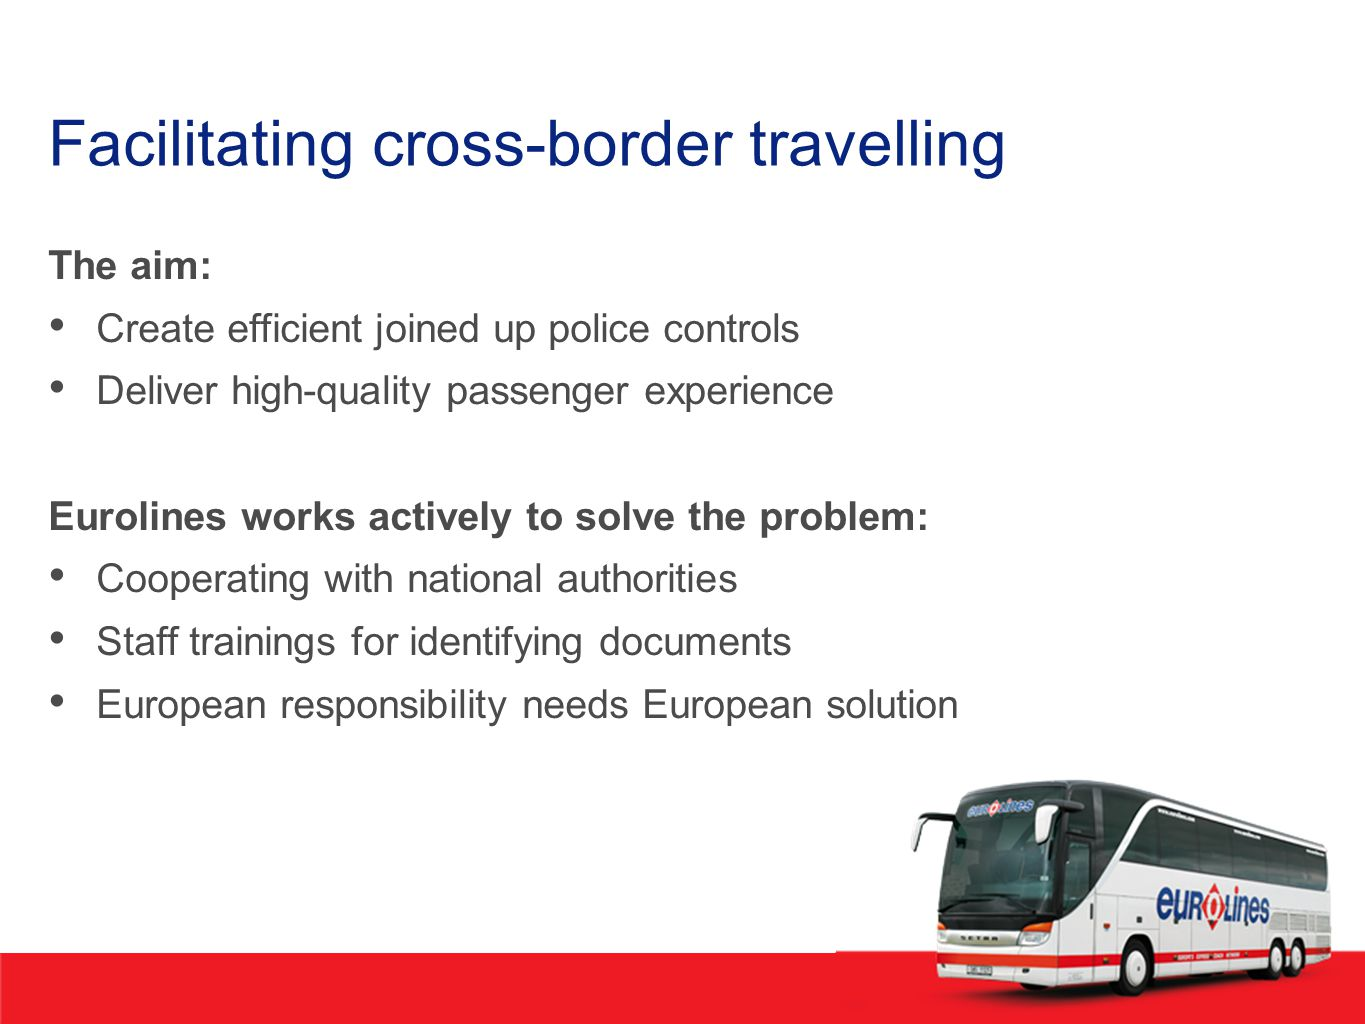 Facilitating cross-border travelling The aim: Create efficient joined up police controls Deliver high-quality passenger experience Eurolines works actively to solve the problem: Cooperating with national authorities Staff trainings for identifying documents European responsibility needs European solution